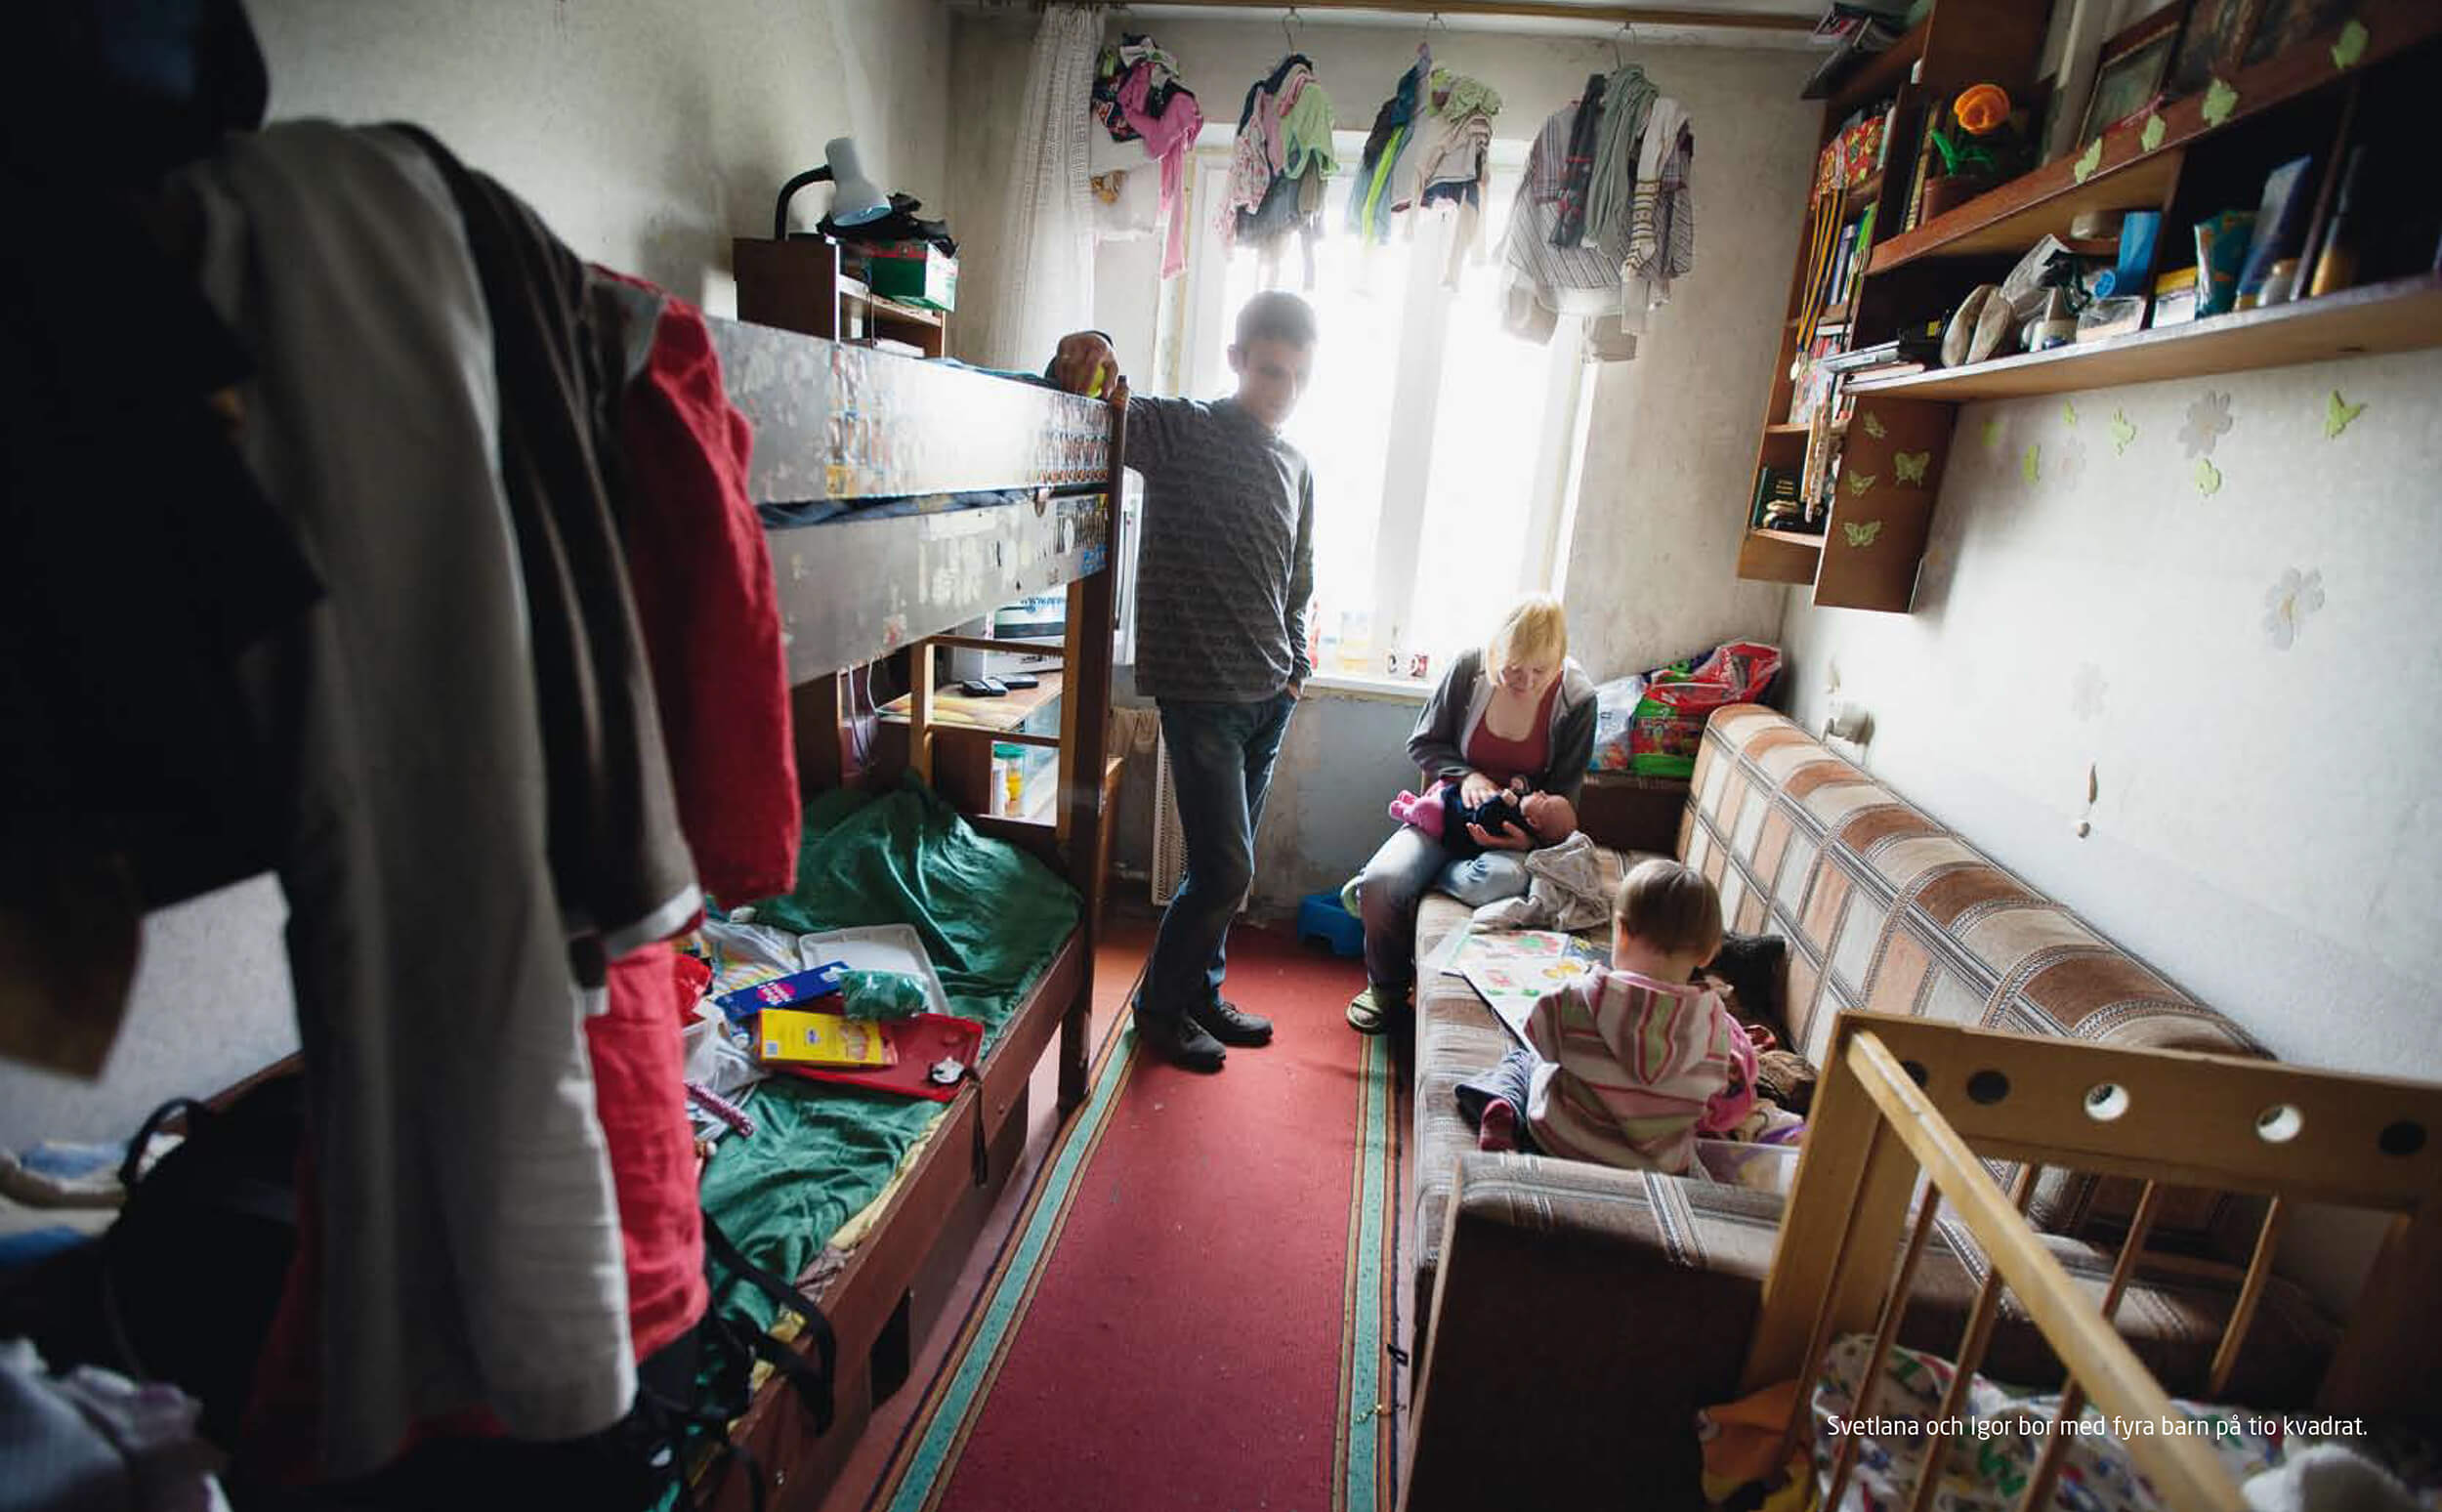 Ukraine. Svetlana, mother of four children has diagnosed HIV, lives with her new man, Igor at ten square meters